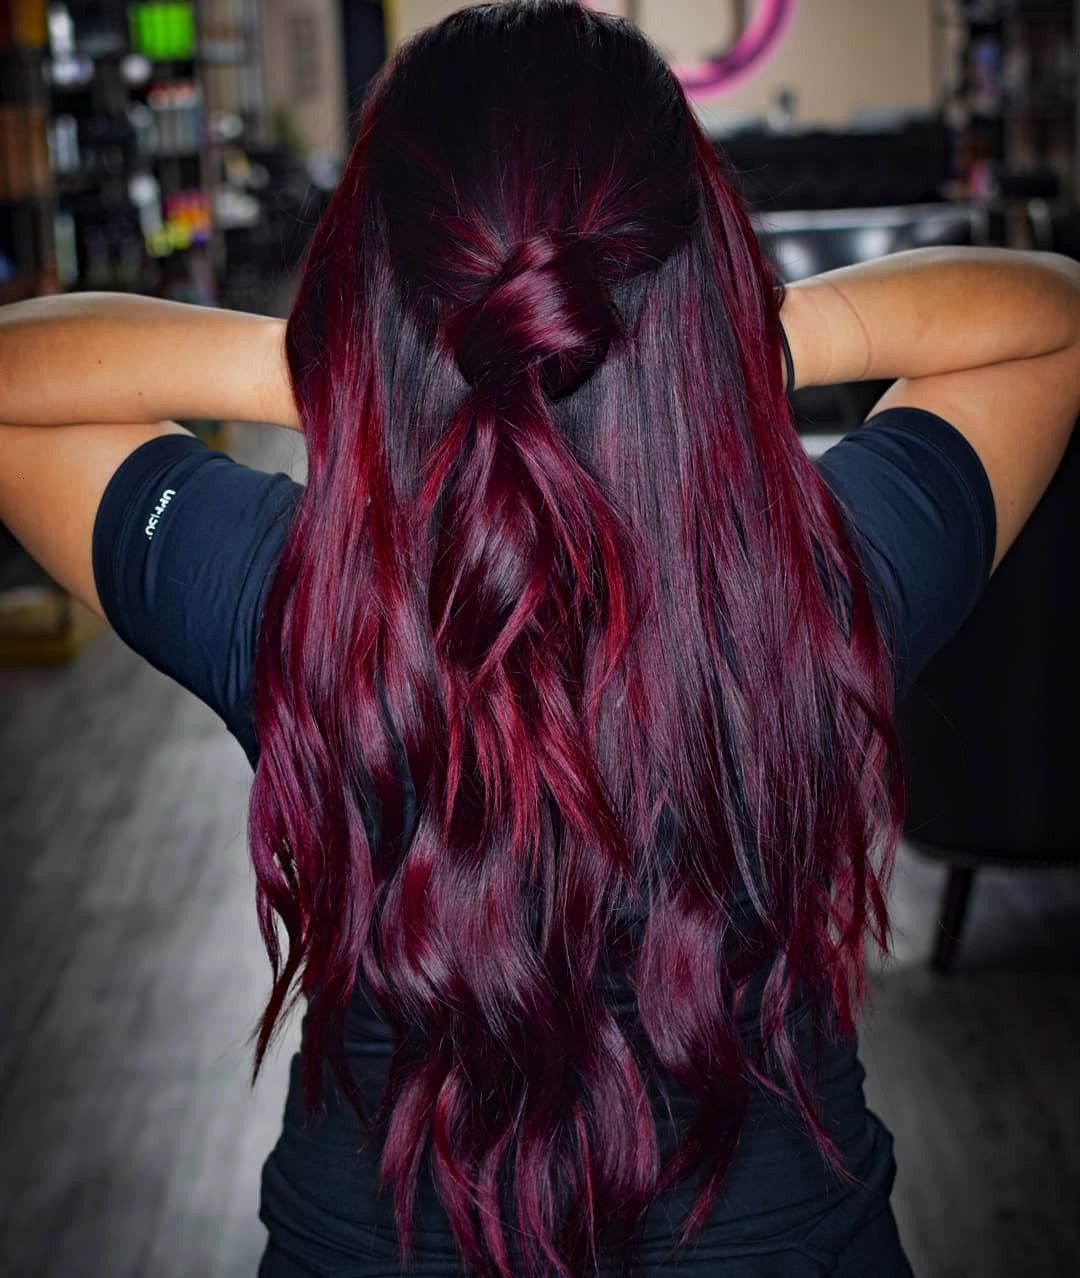 red is the trend color for autumn 40 beautiful inspirationsautumnBalayage red is the trend color for autumn 40 beautiful inspirationsautumn Clamp in diagonally twist 360...